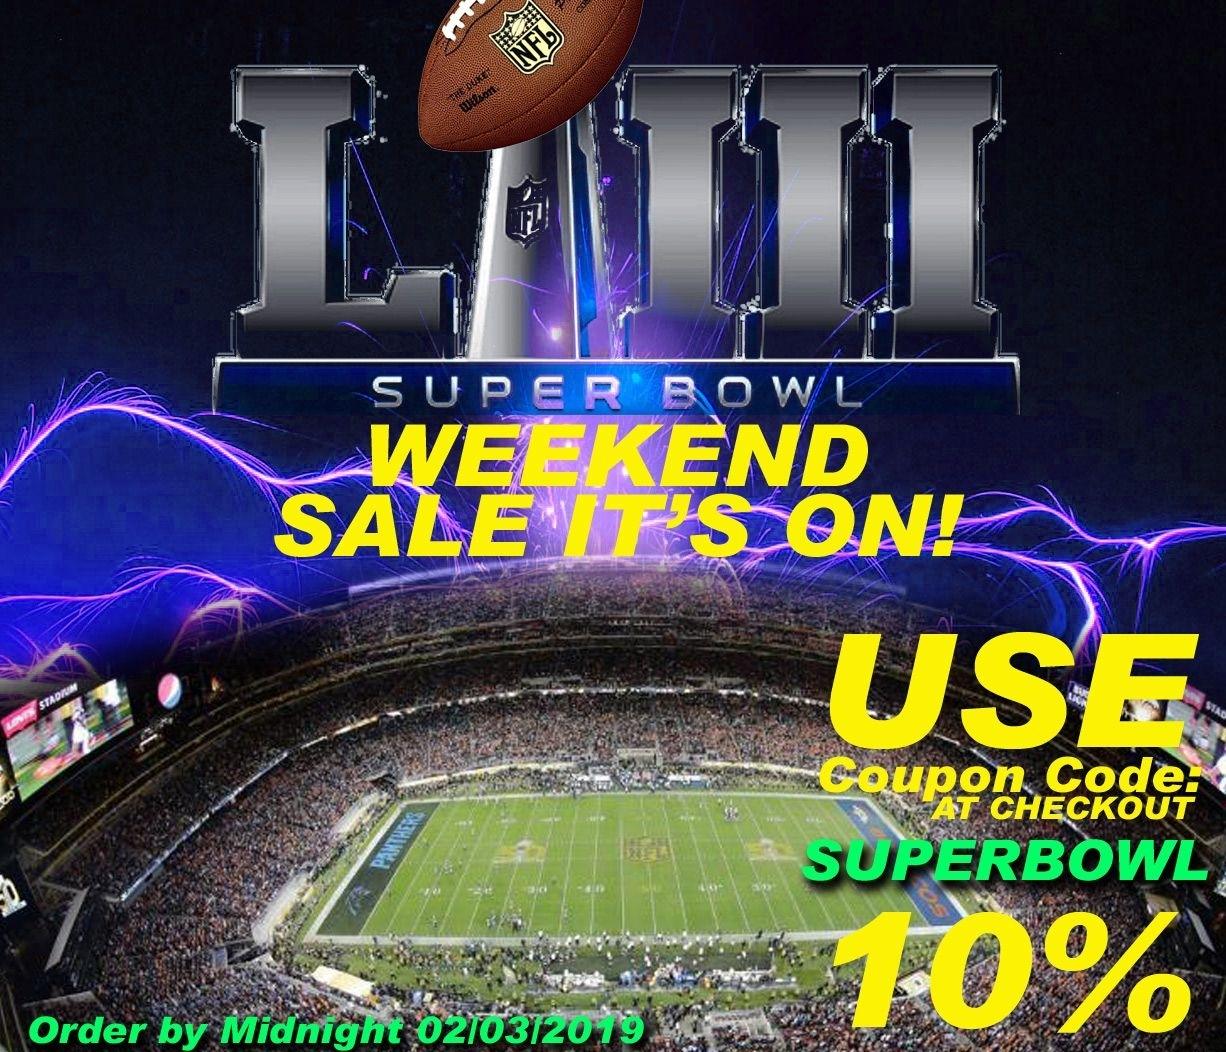 Superbowl Promo 2019 | Elitelimit Ads Promotions | Super within Super Bowl Weekend 2019